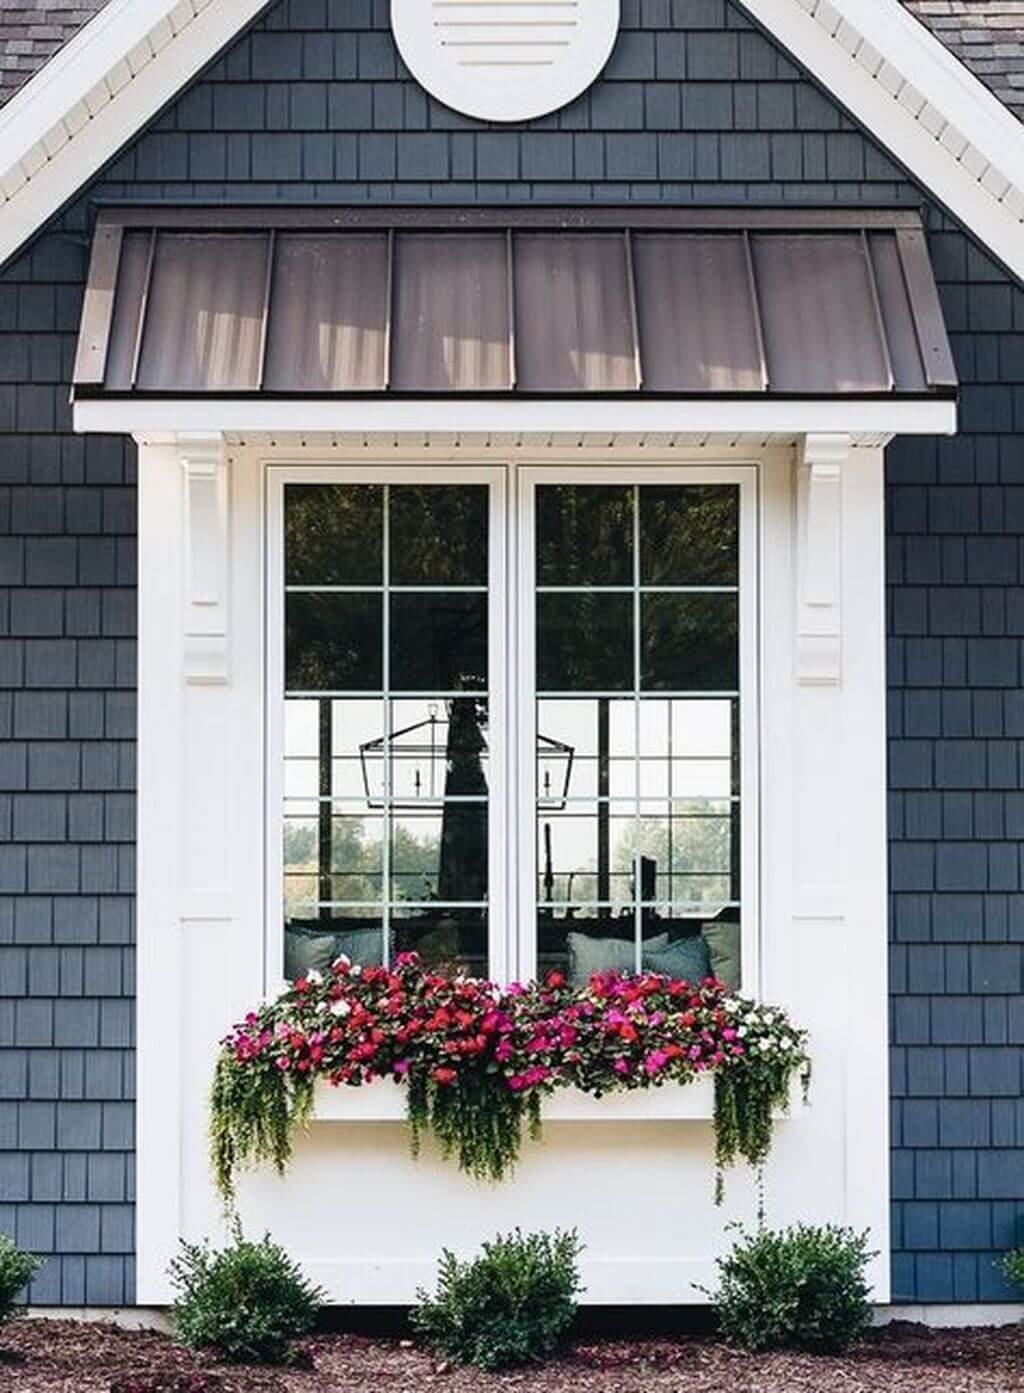 12 Exterior Window Trim Ideas For An Attractive Look